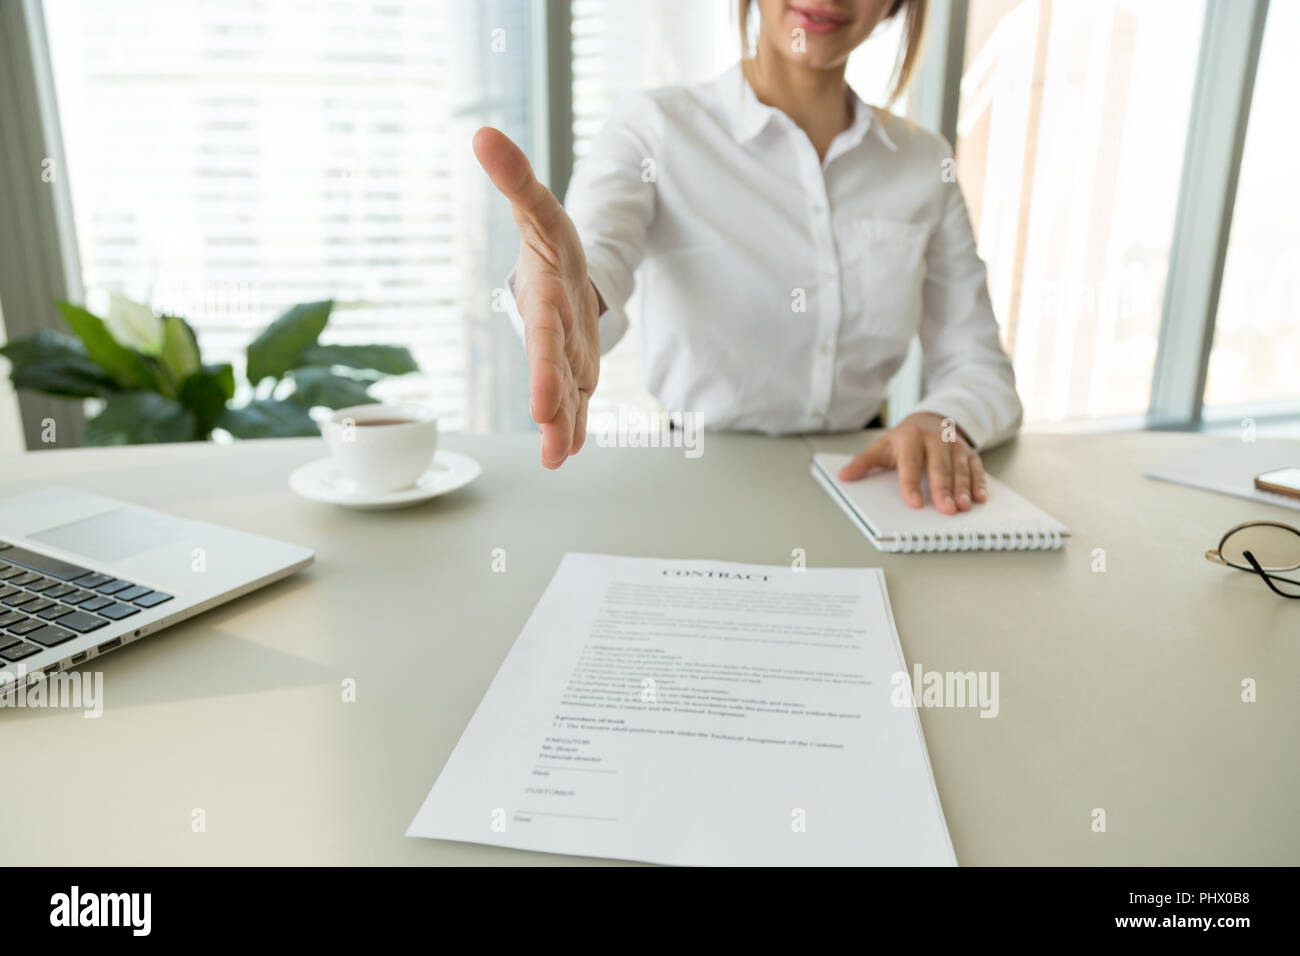 Businesswoman employer extending hand for handshake offering sig - Stock Image